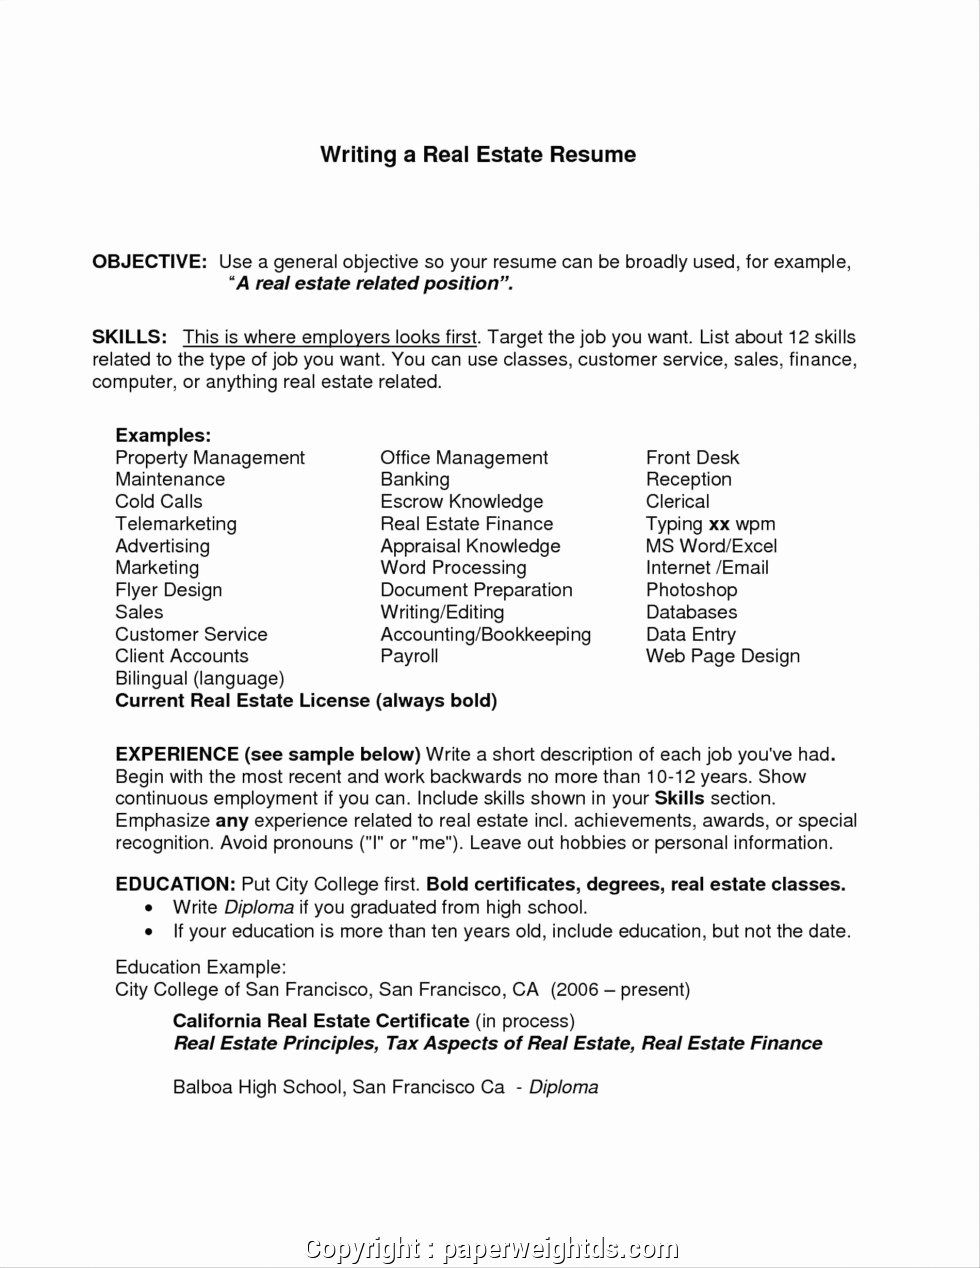 Generic Objective For Resume Elegant Simply Generic Resume Objective Ge Good Objective For Resume Resume Objective Examples Resume Objective Statement Examples